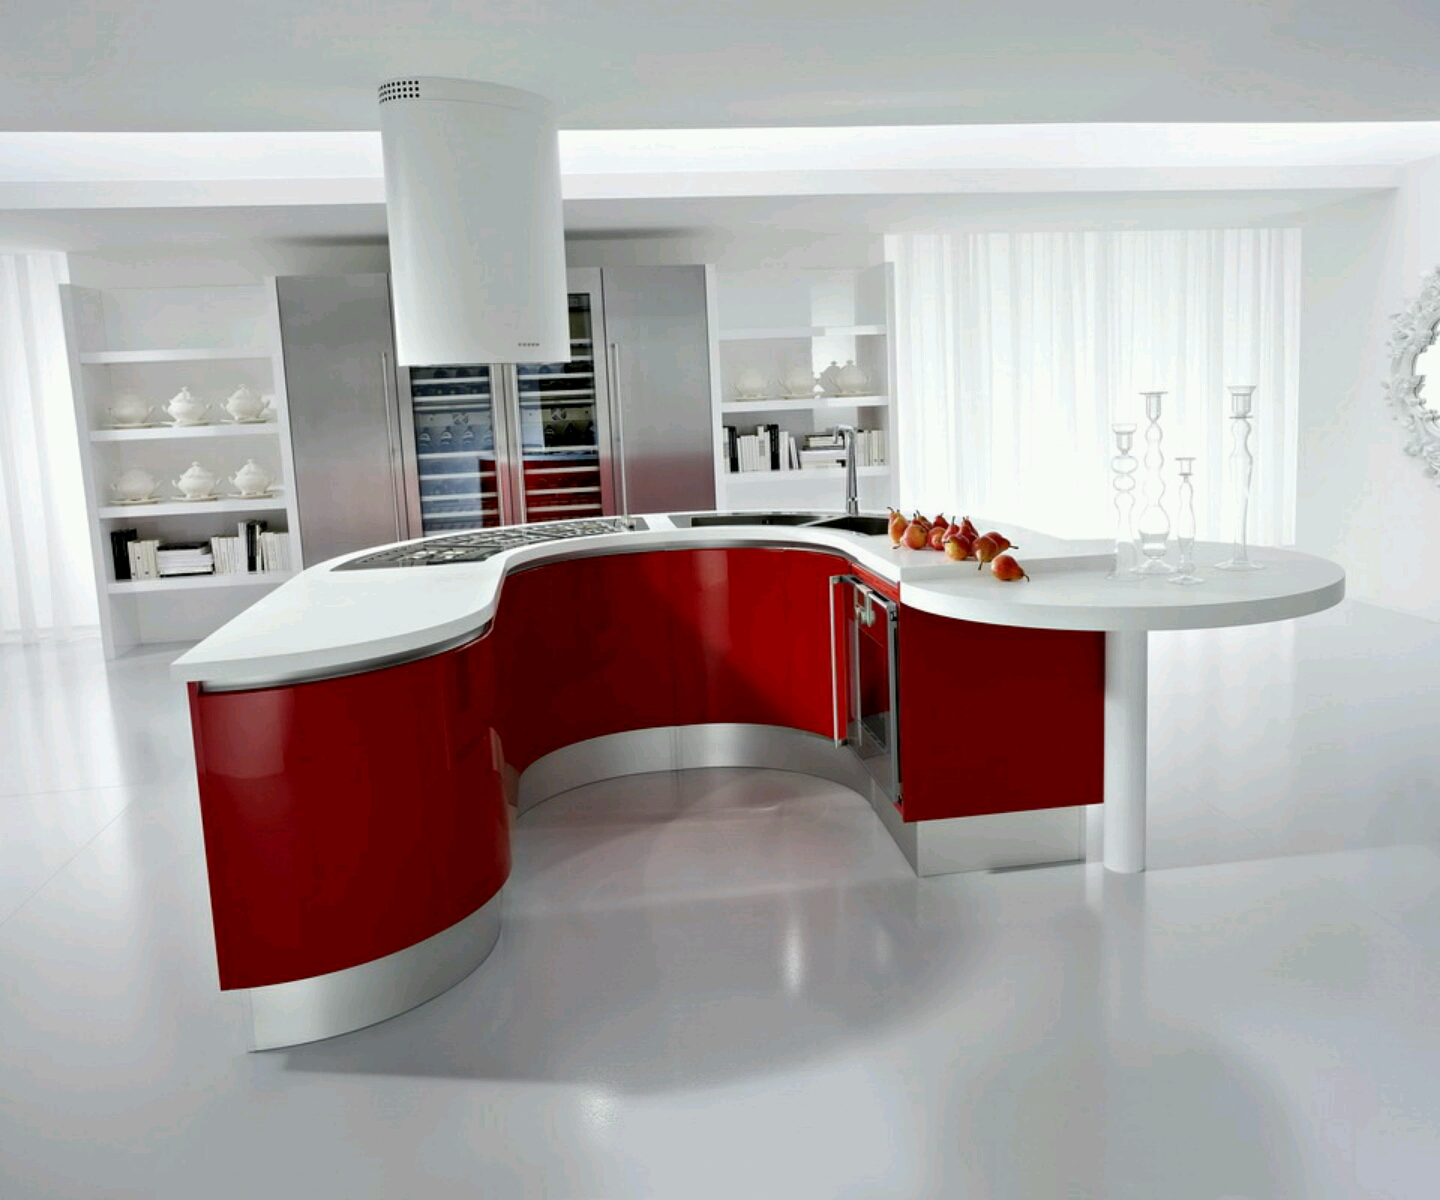 Modern kitchen cabinets designs ideas furniture gallery for Pics of modern kitchen designs